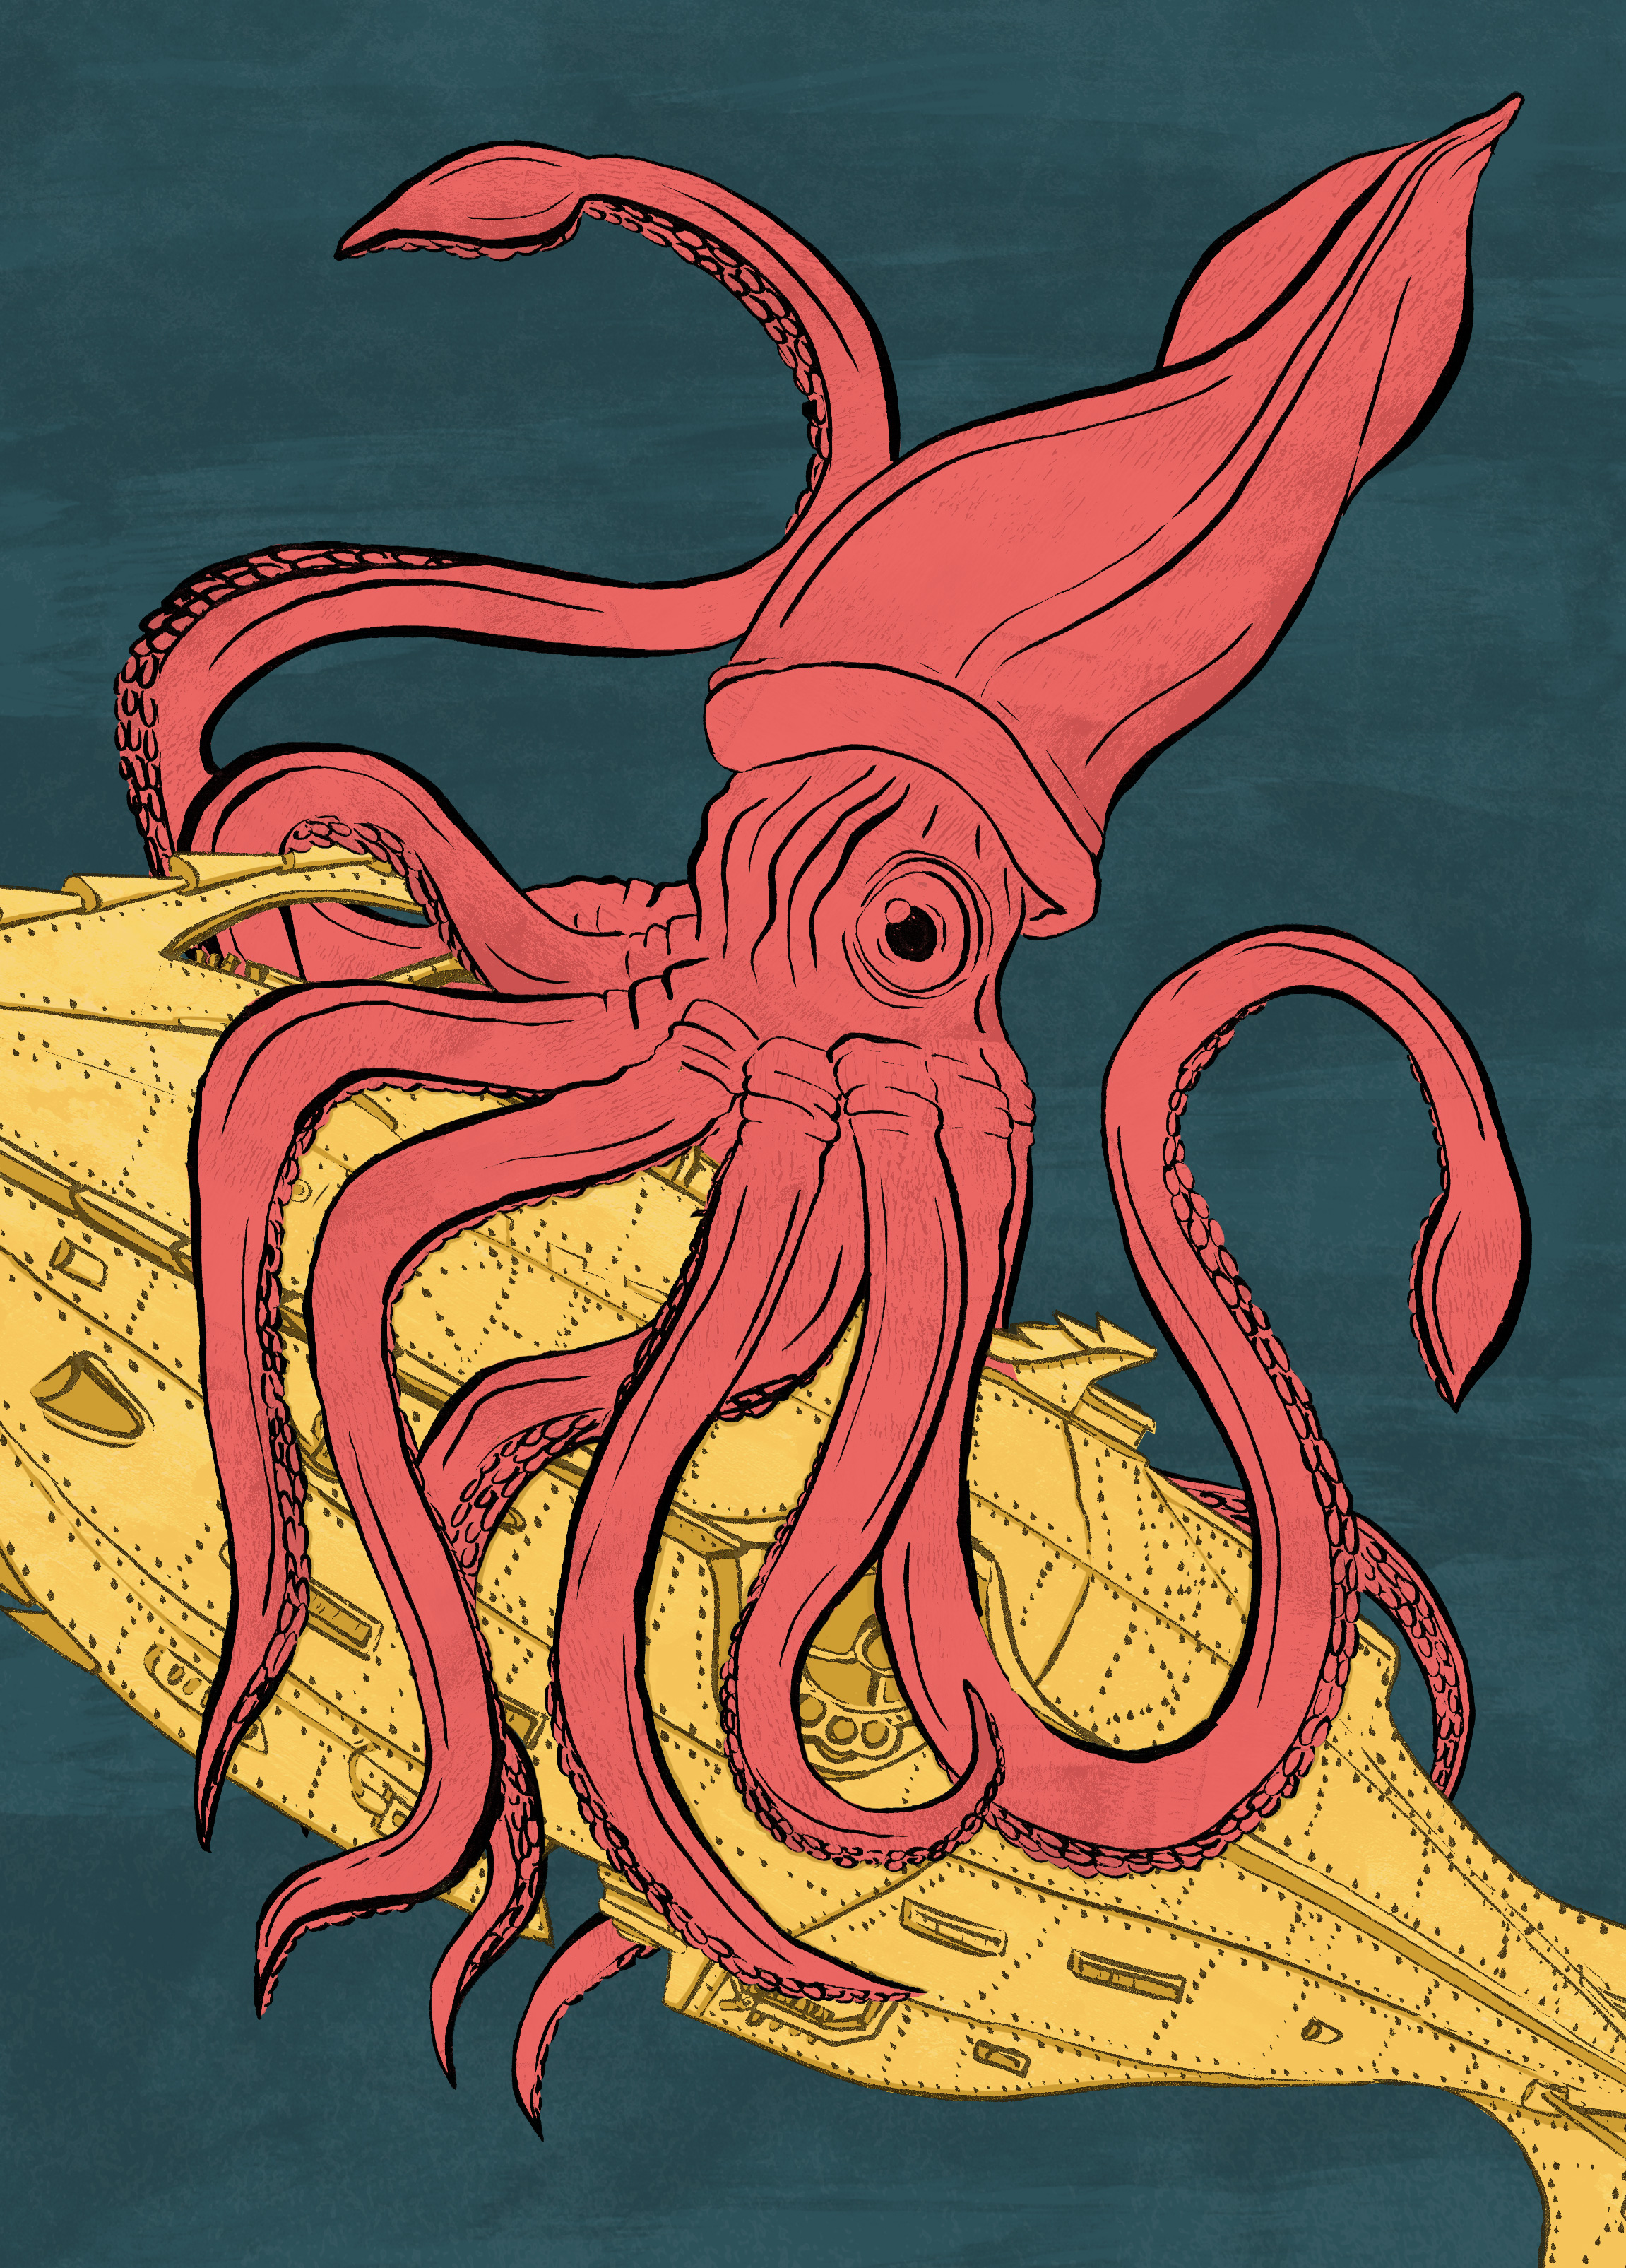 Kraken attacks... - This illustration is my representation of the fabled 'Kraken' attacking the Nautilus.